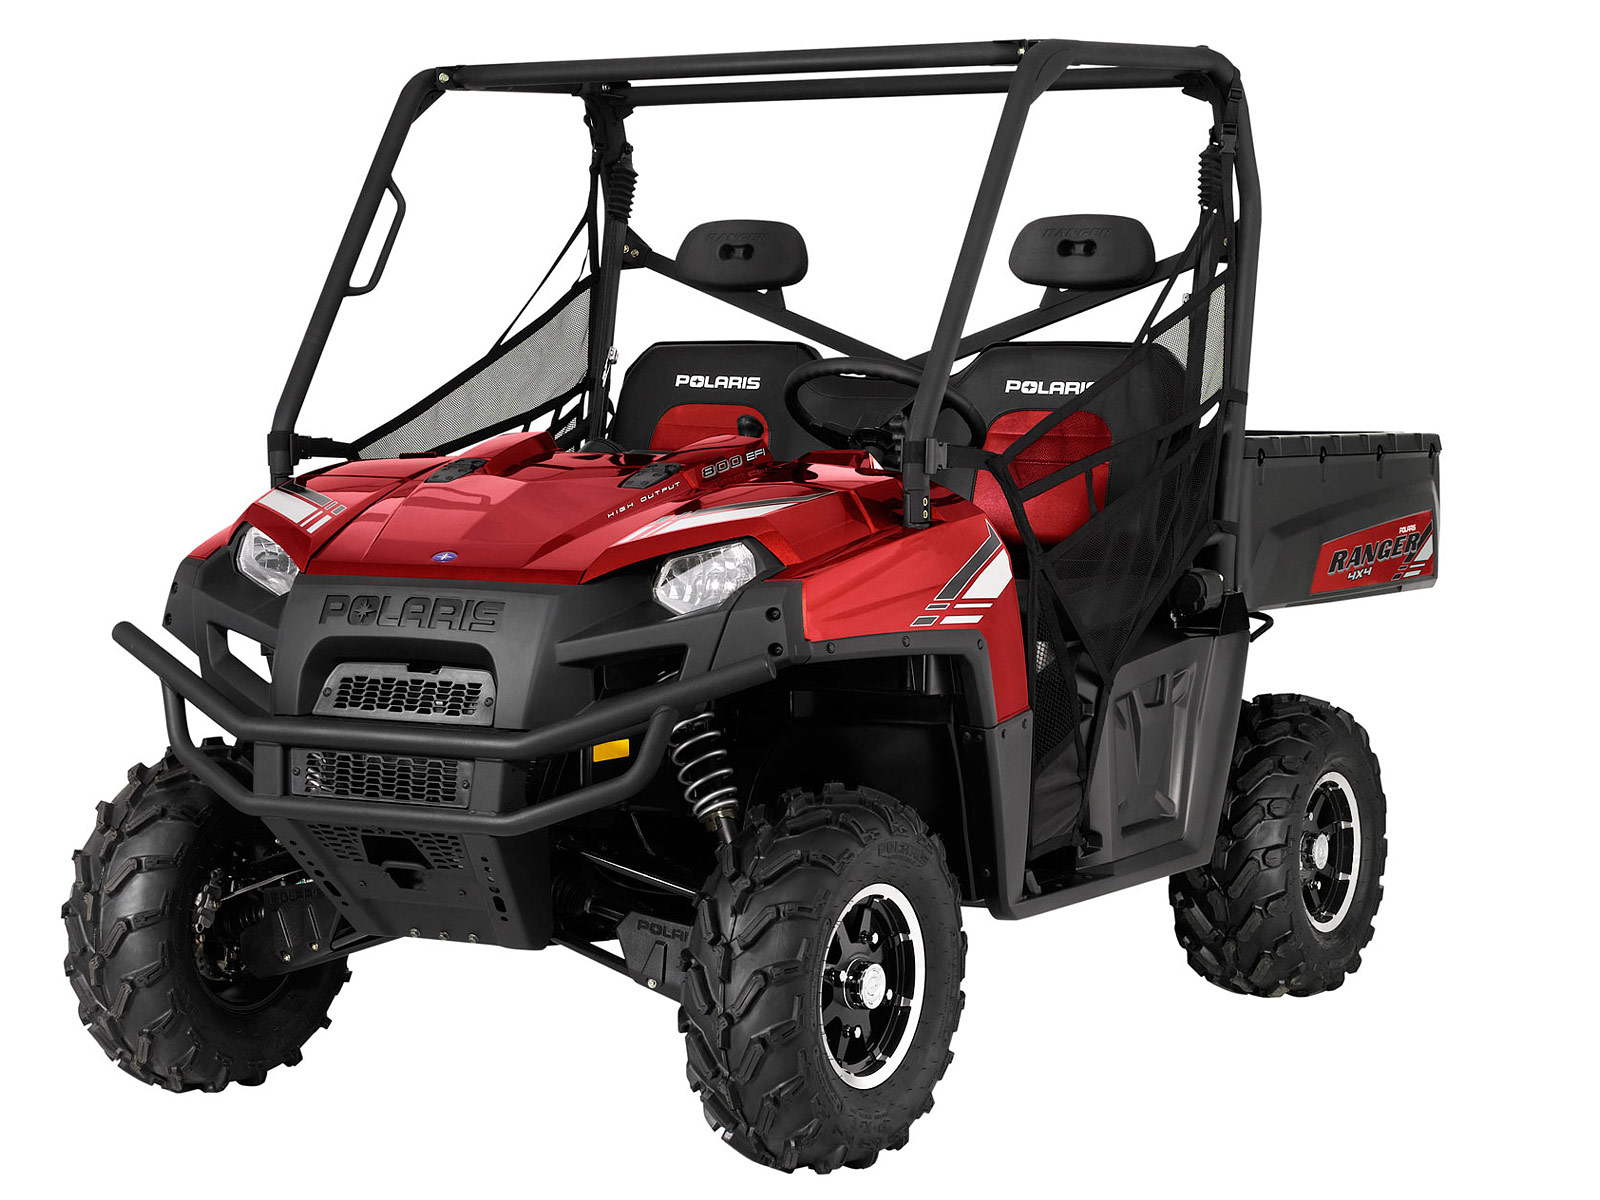 Polaris ranger photo - 1